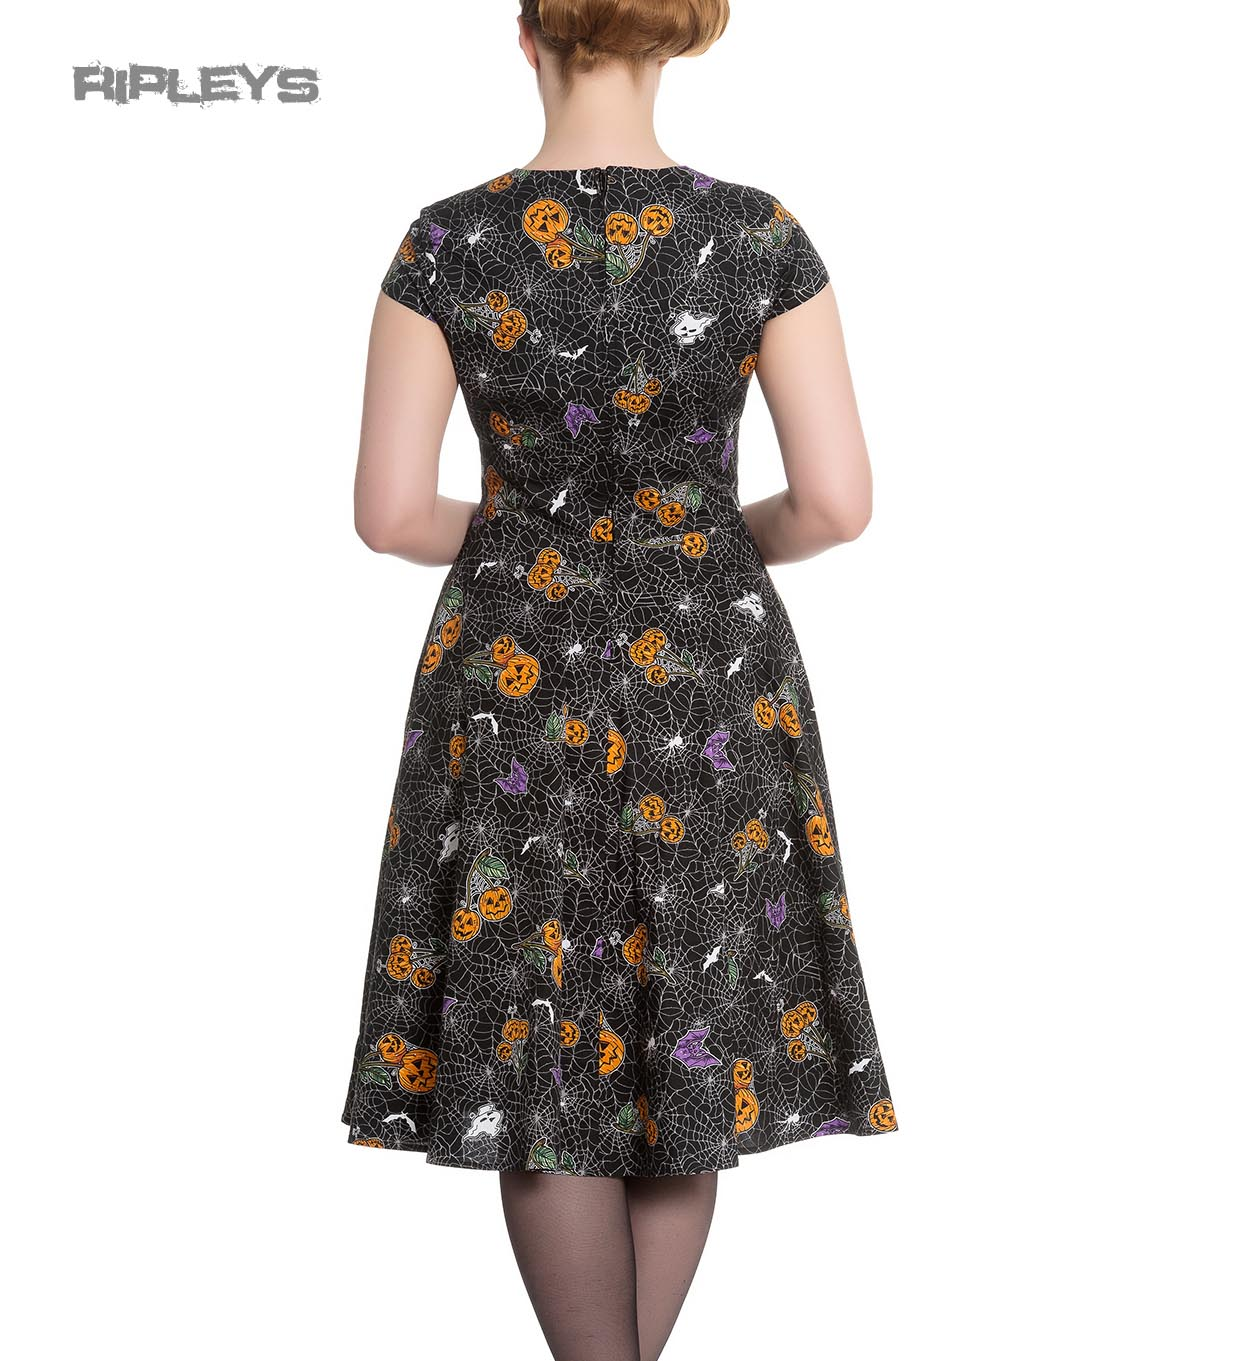 Hell-Bunny-Black-Pinup-50s-Goth-Webs-Dress-HARLOW-Halloween-All-Sizes thumbnail 12